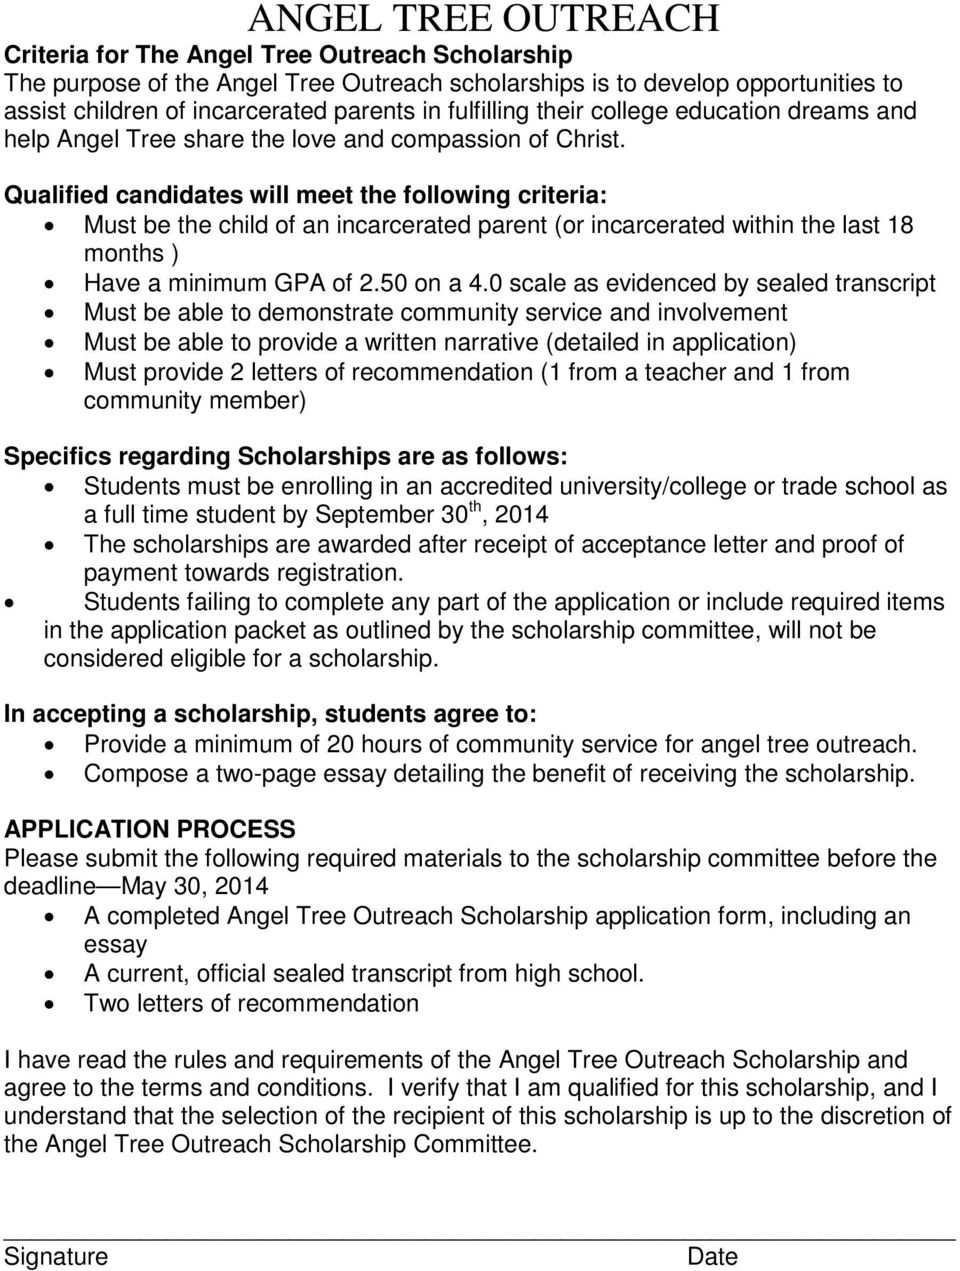 Qualified candidates will meet the following criteria: Must be the child of an incarcerated parent (or incarcerated within the last 18 months ) Have a minimum GPA of 2.50 on a 4.